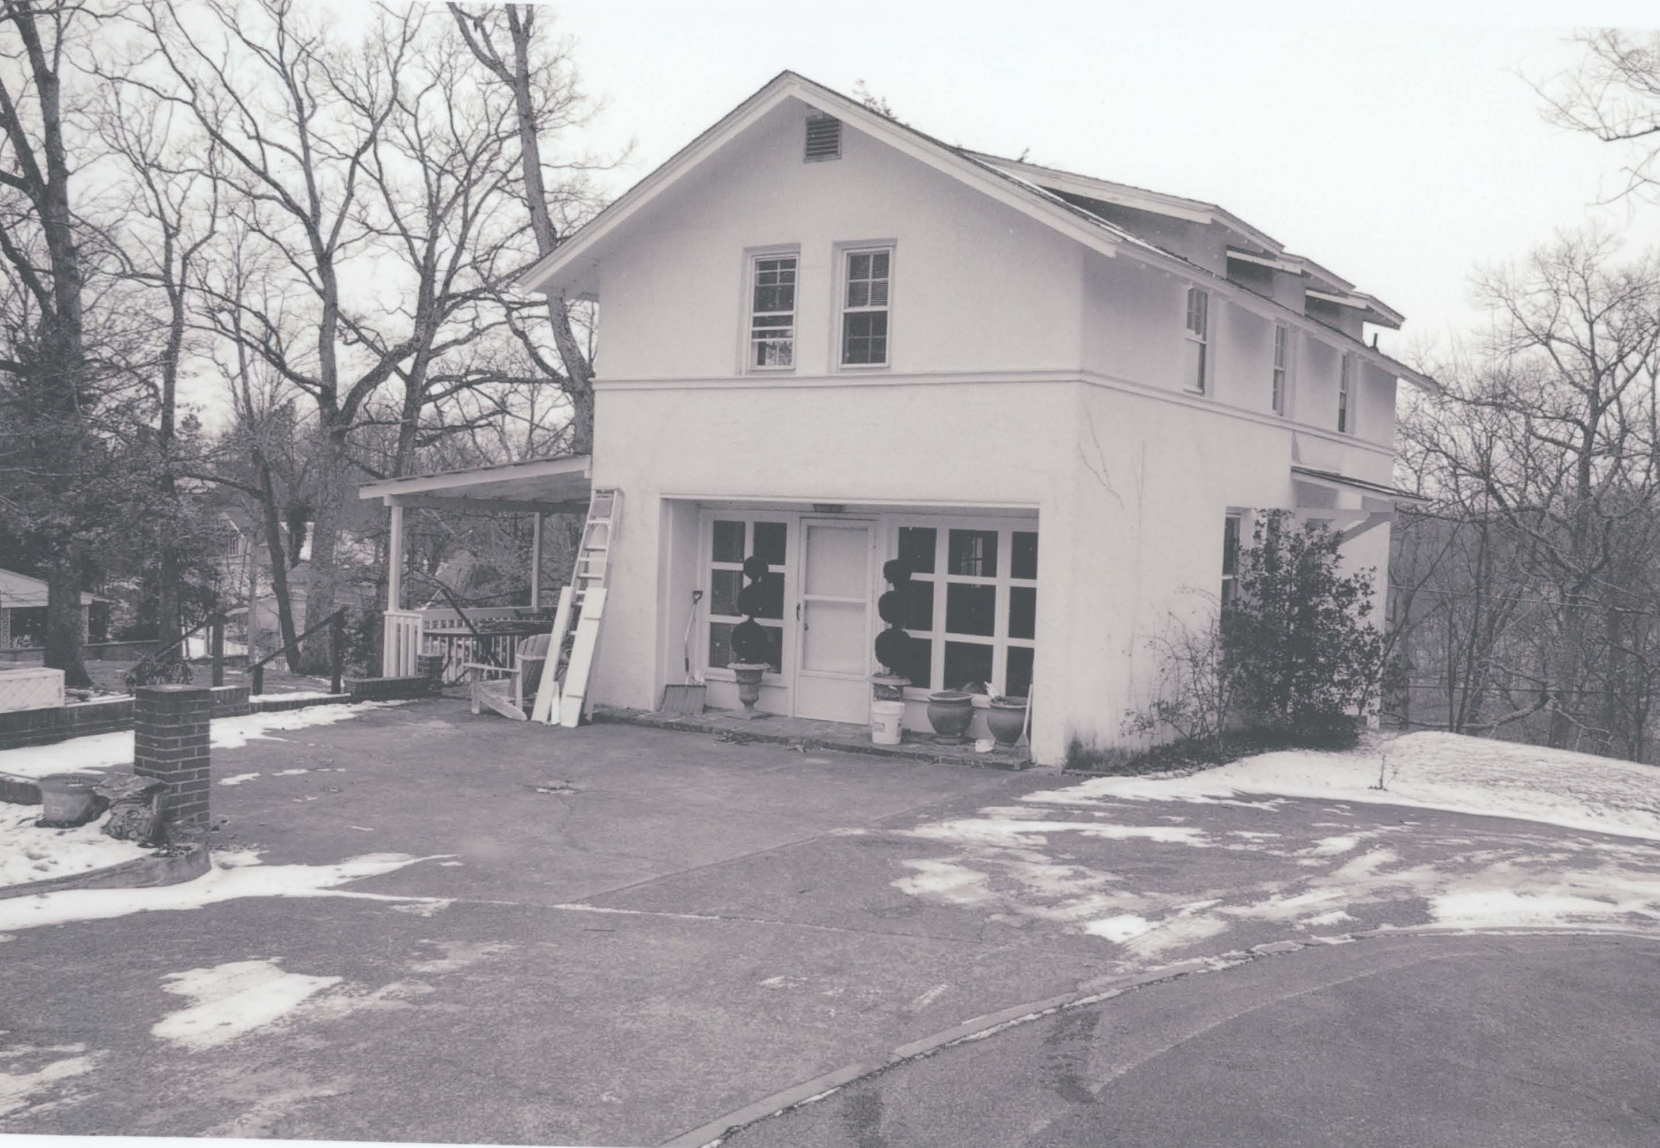 Kenwood's garage, which was converted into a guest house in 1975